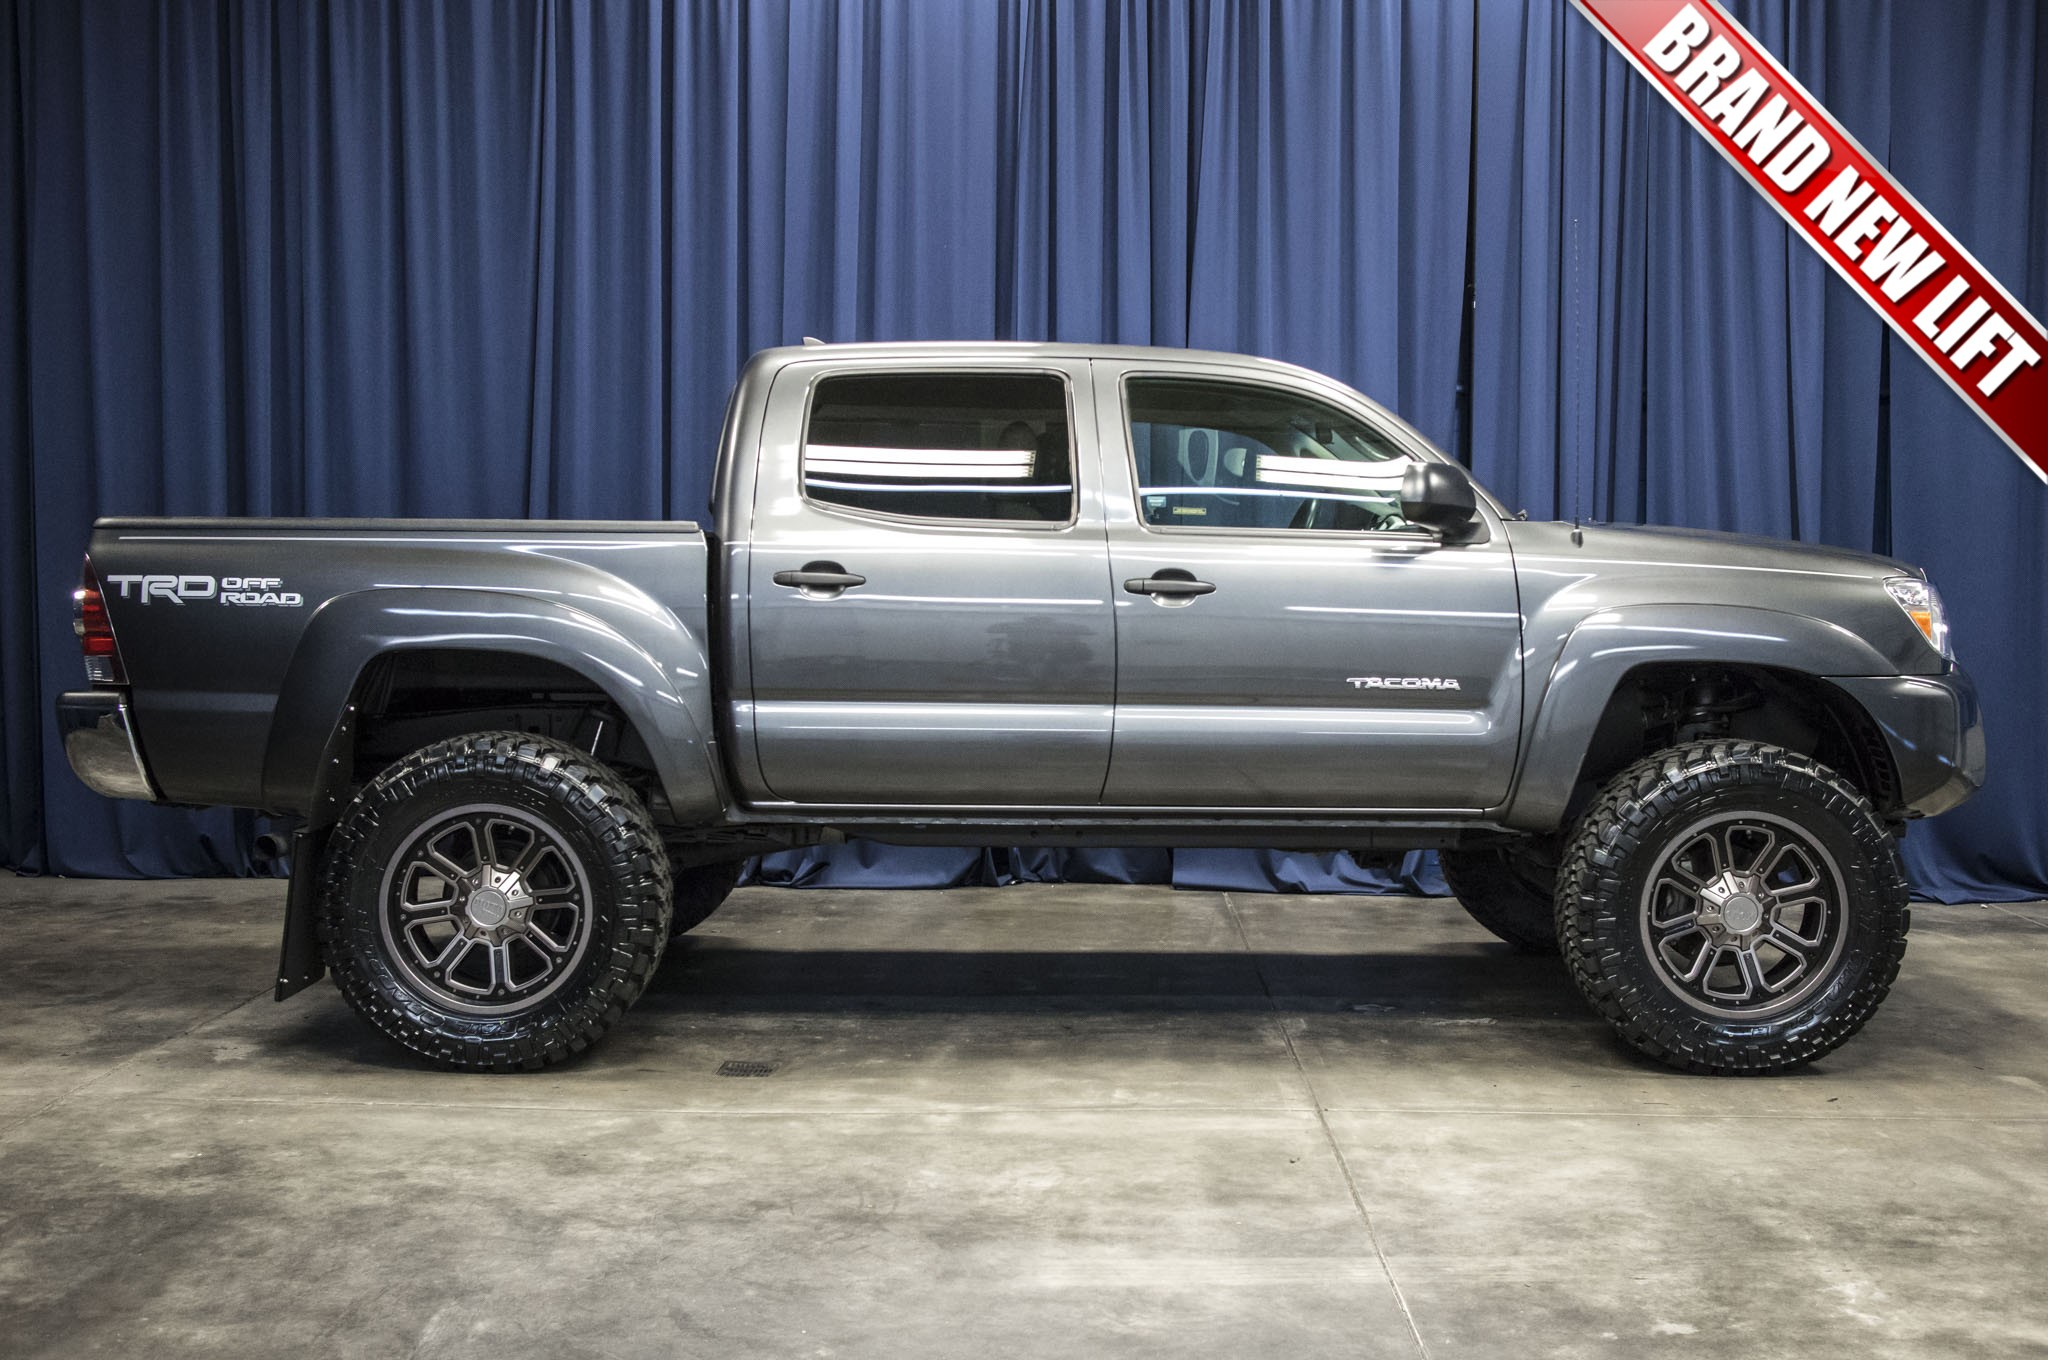 used lifted 2015 toyota tacoma trd off road 4x4 truck for sale 42734. Black Bedroom Furniture Sets. Home Design Ideas